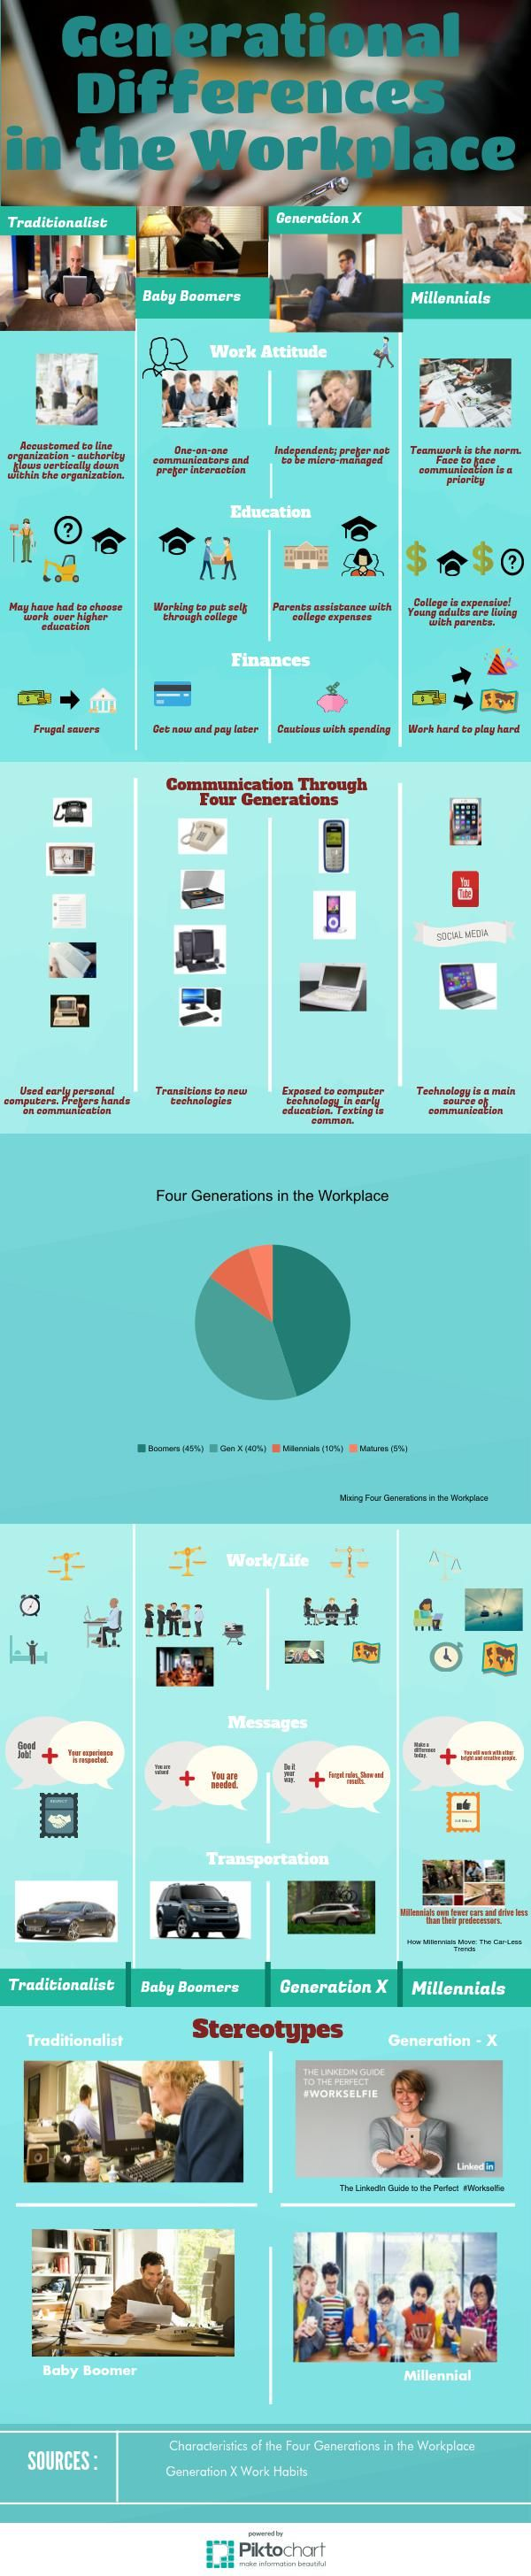 Generational Differences in the Workplace Infographic | @Piktochart Infographic